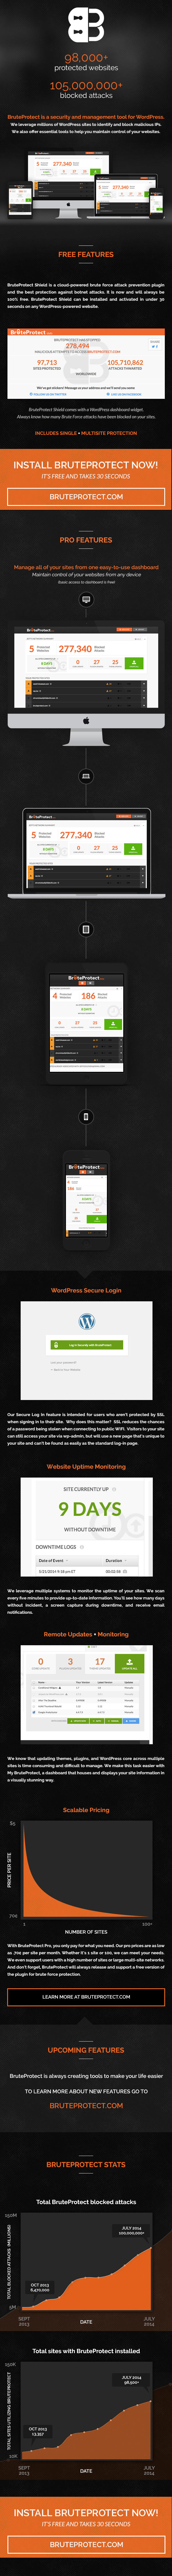 BruteProtect: WordPress Protection and Management by maverick3x6